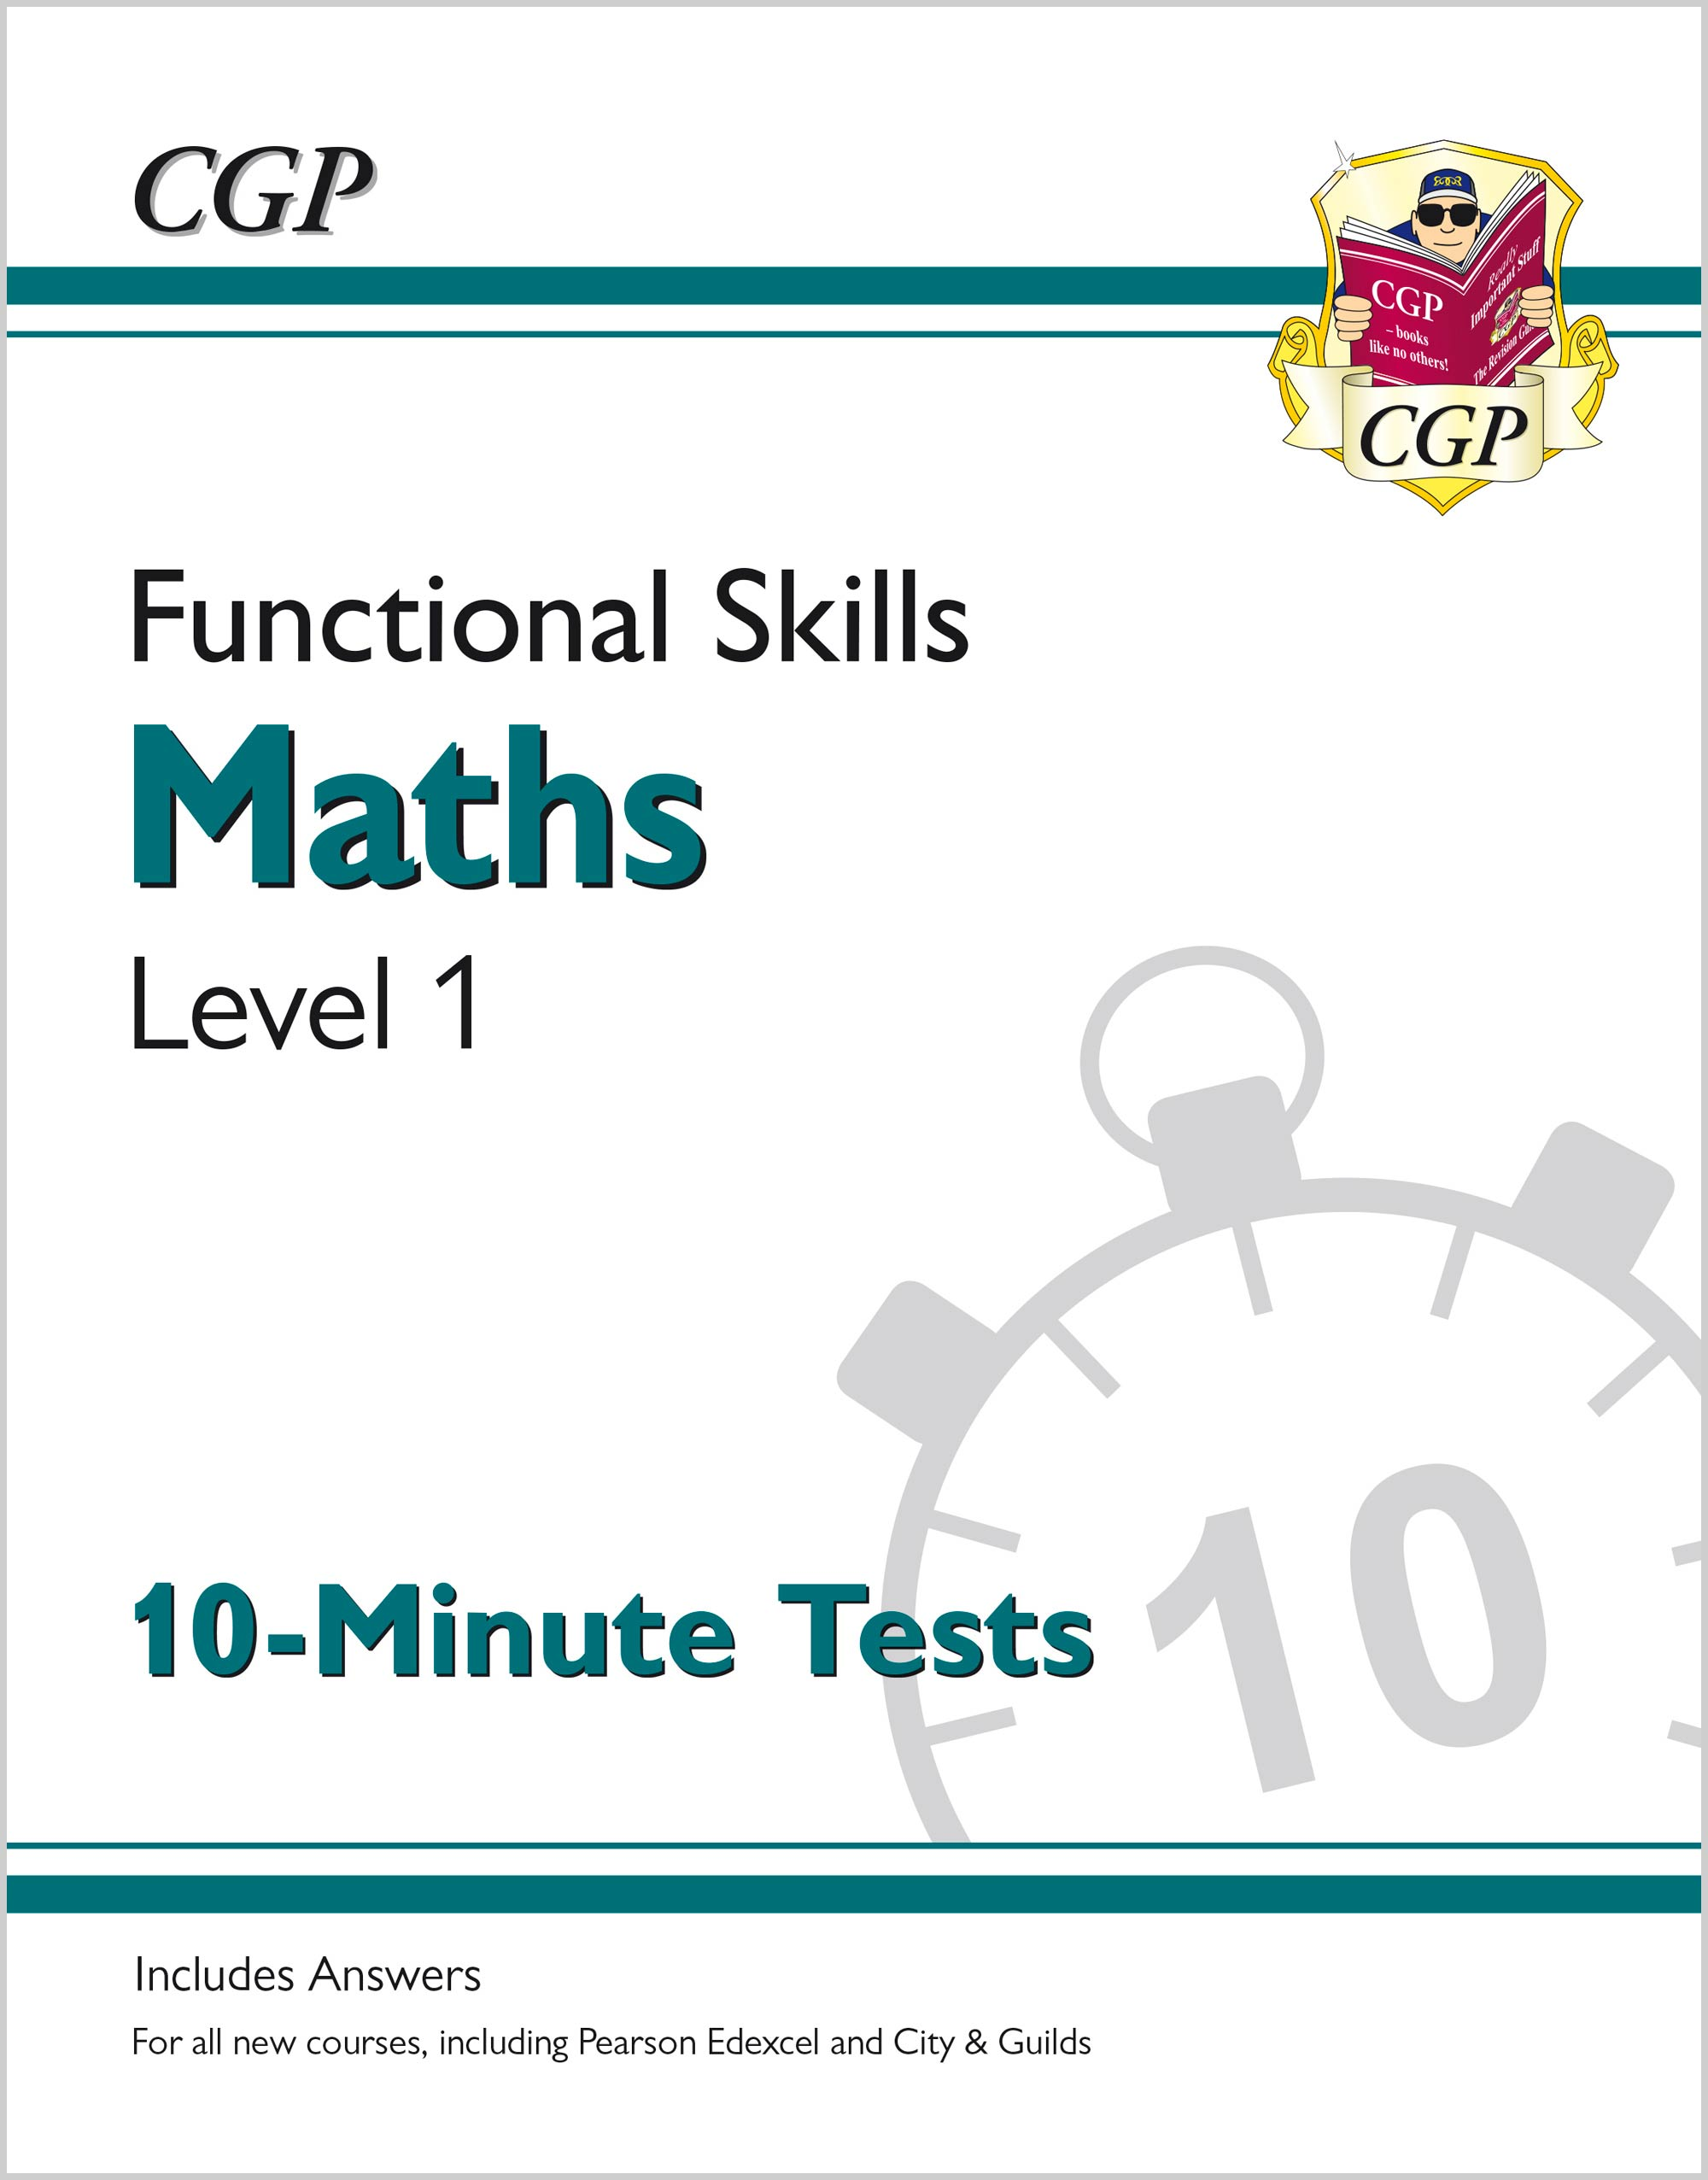 M1XPA1 - New Functional Skills Maths Level 1 - 10 Minute Tests (for 2020 & beyond)